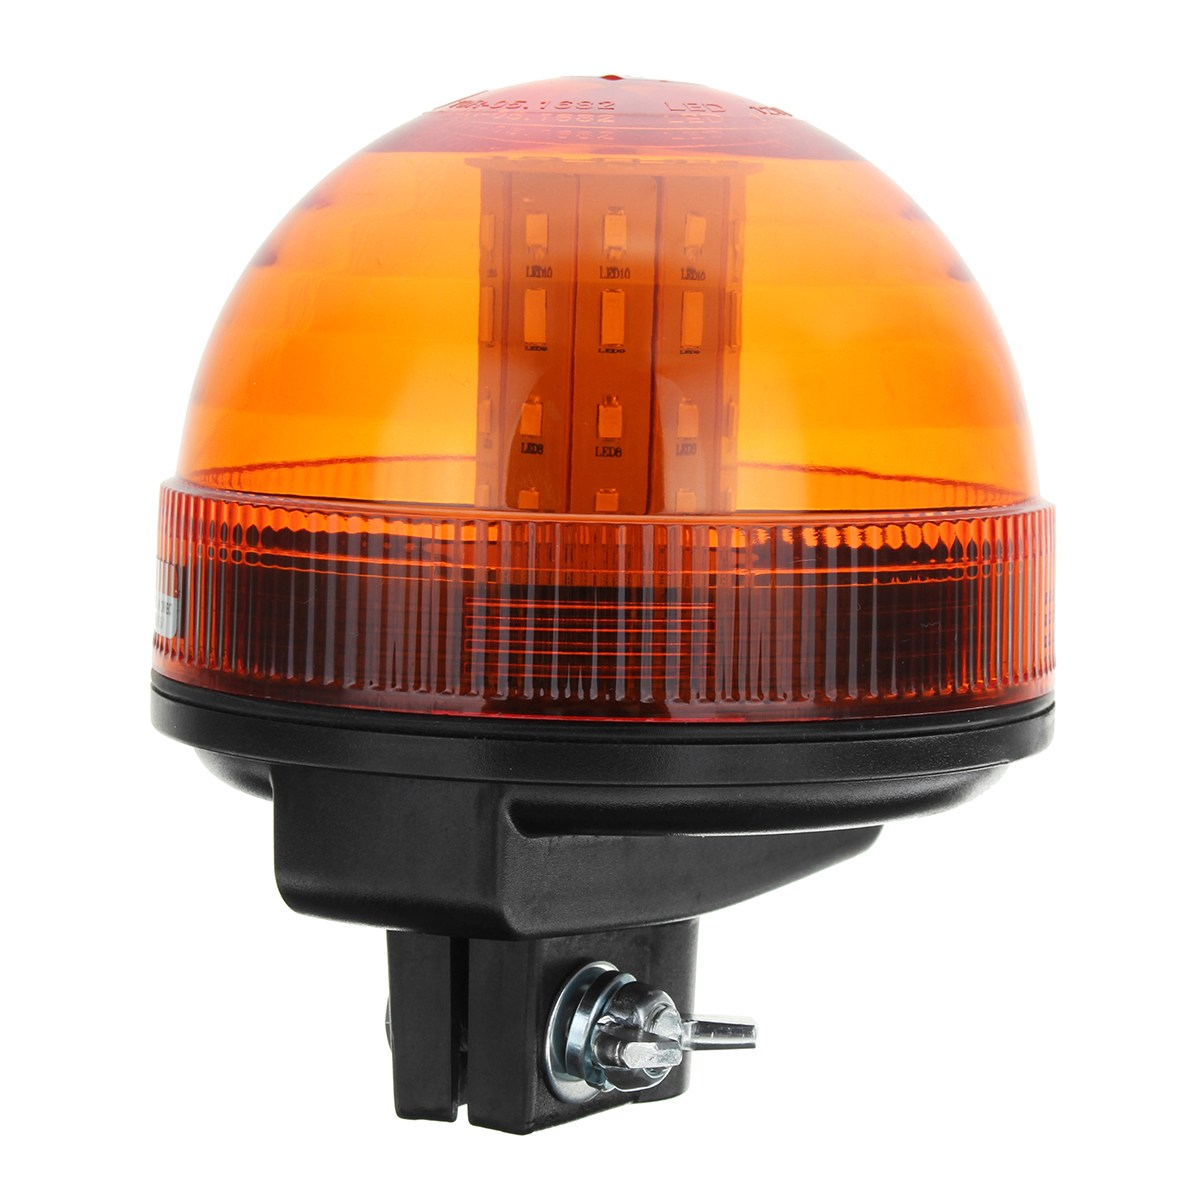 все цены на Safurance 40 LED Rotating Flashing Amber Beacon Flexible Tractor Warning Light Roadway Safety онлайн